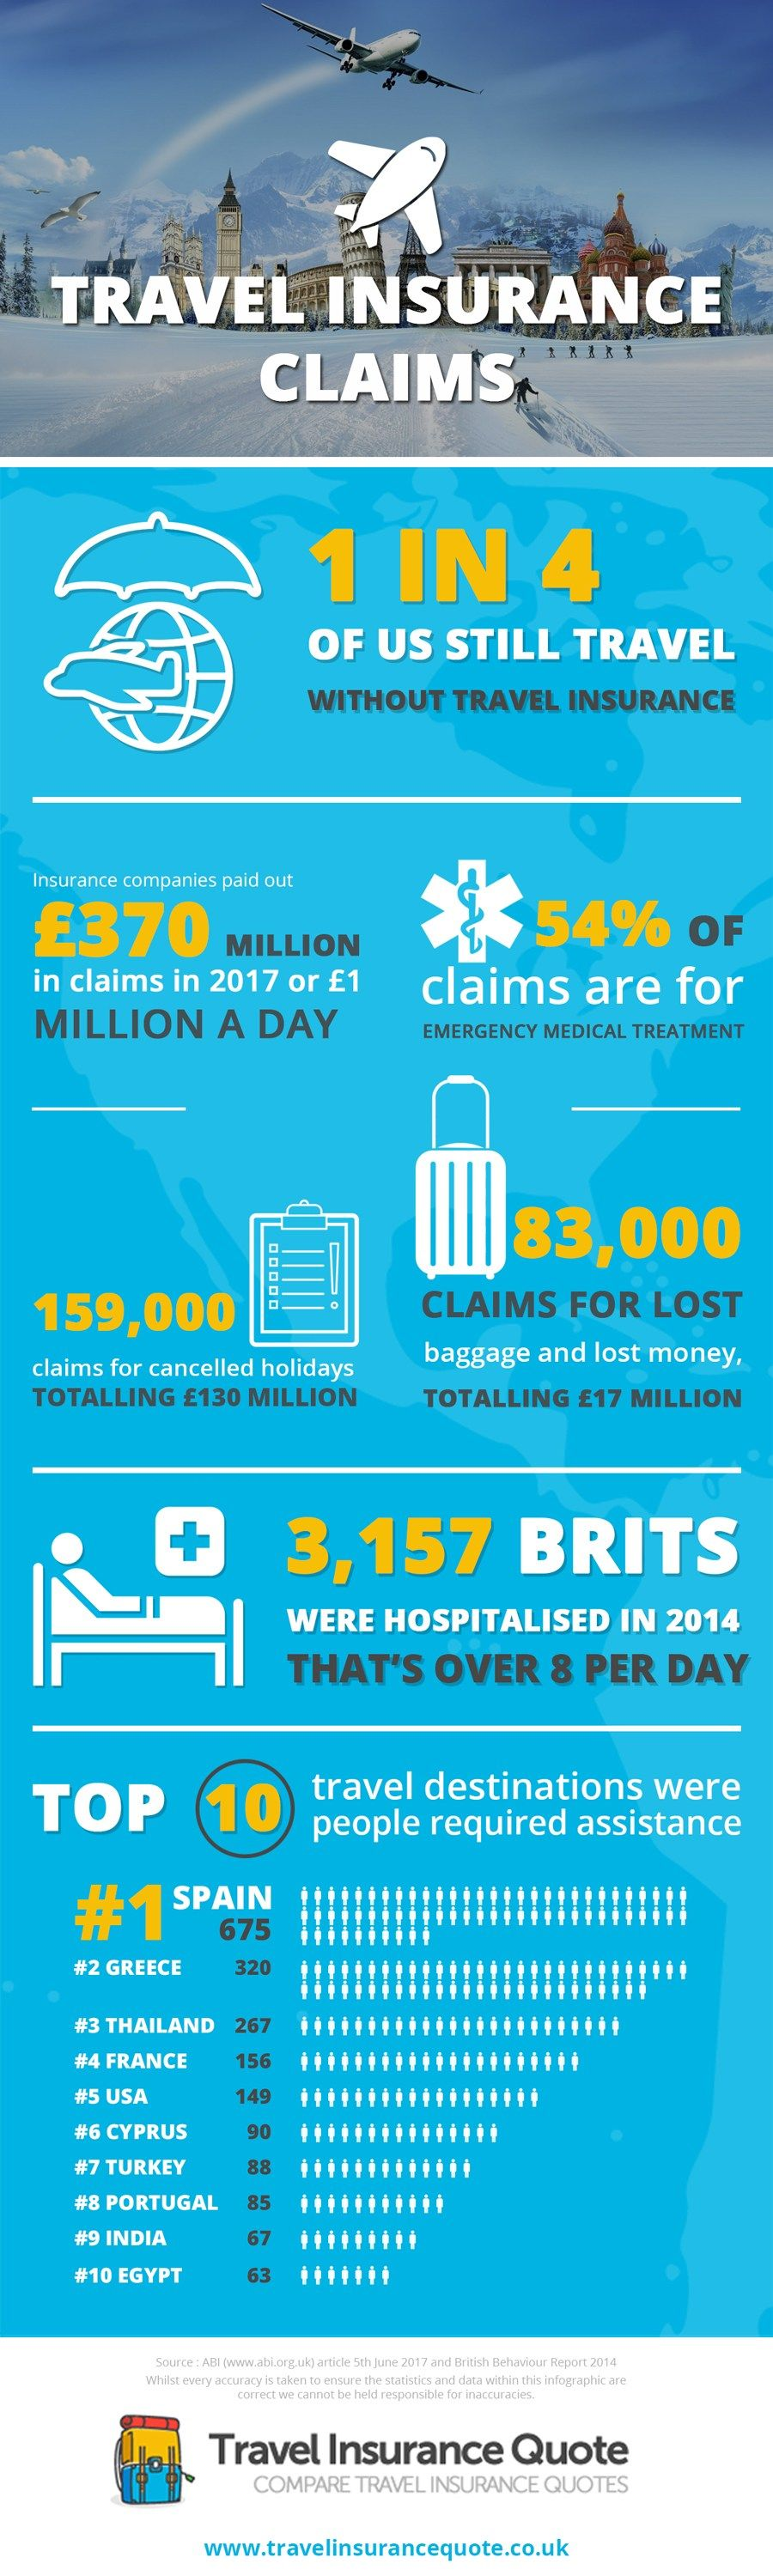 Travel Insurance Infographic by www.travelinsurancequote